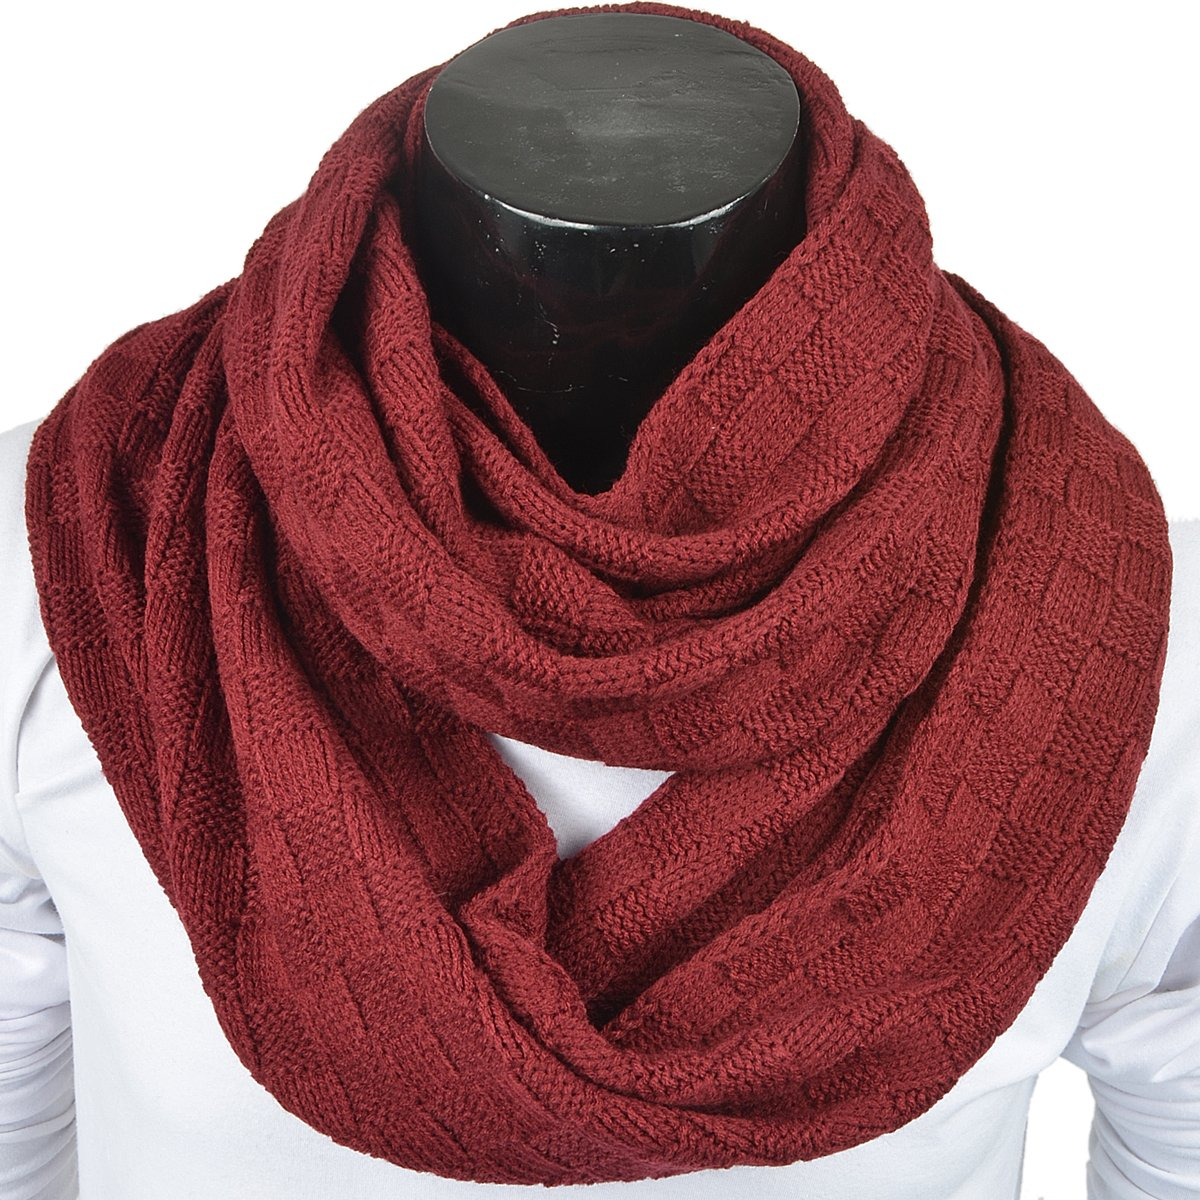 forbusite charpe tube hiver foulard snood tricot homme et femme cache with  echarpe tube homme. 0063a4ee1d8